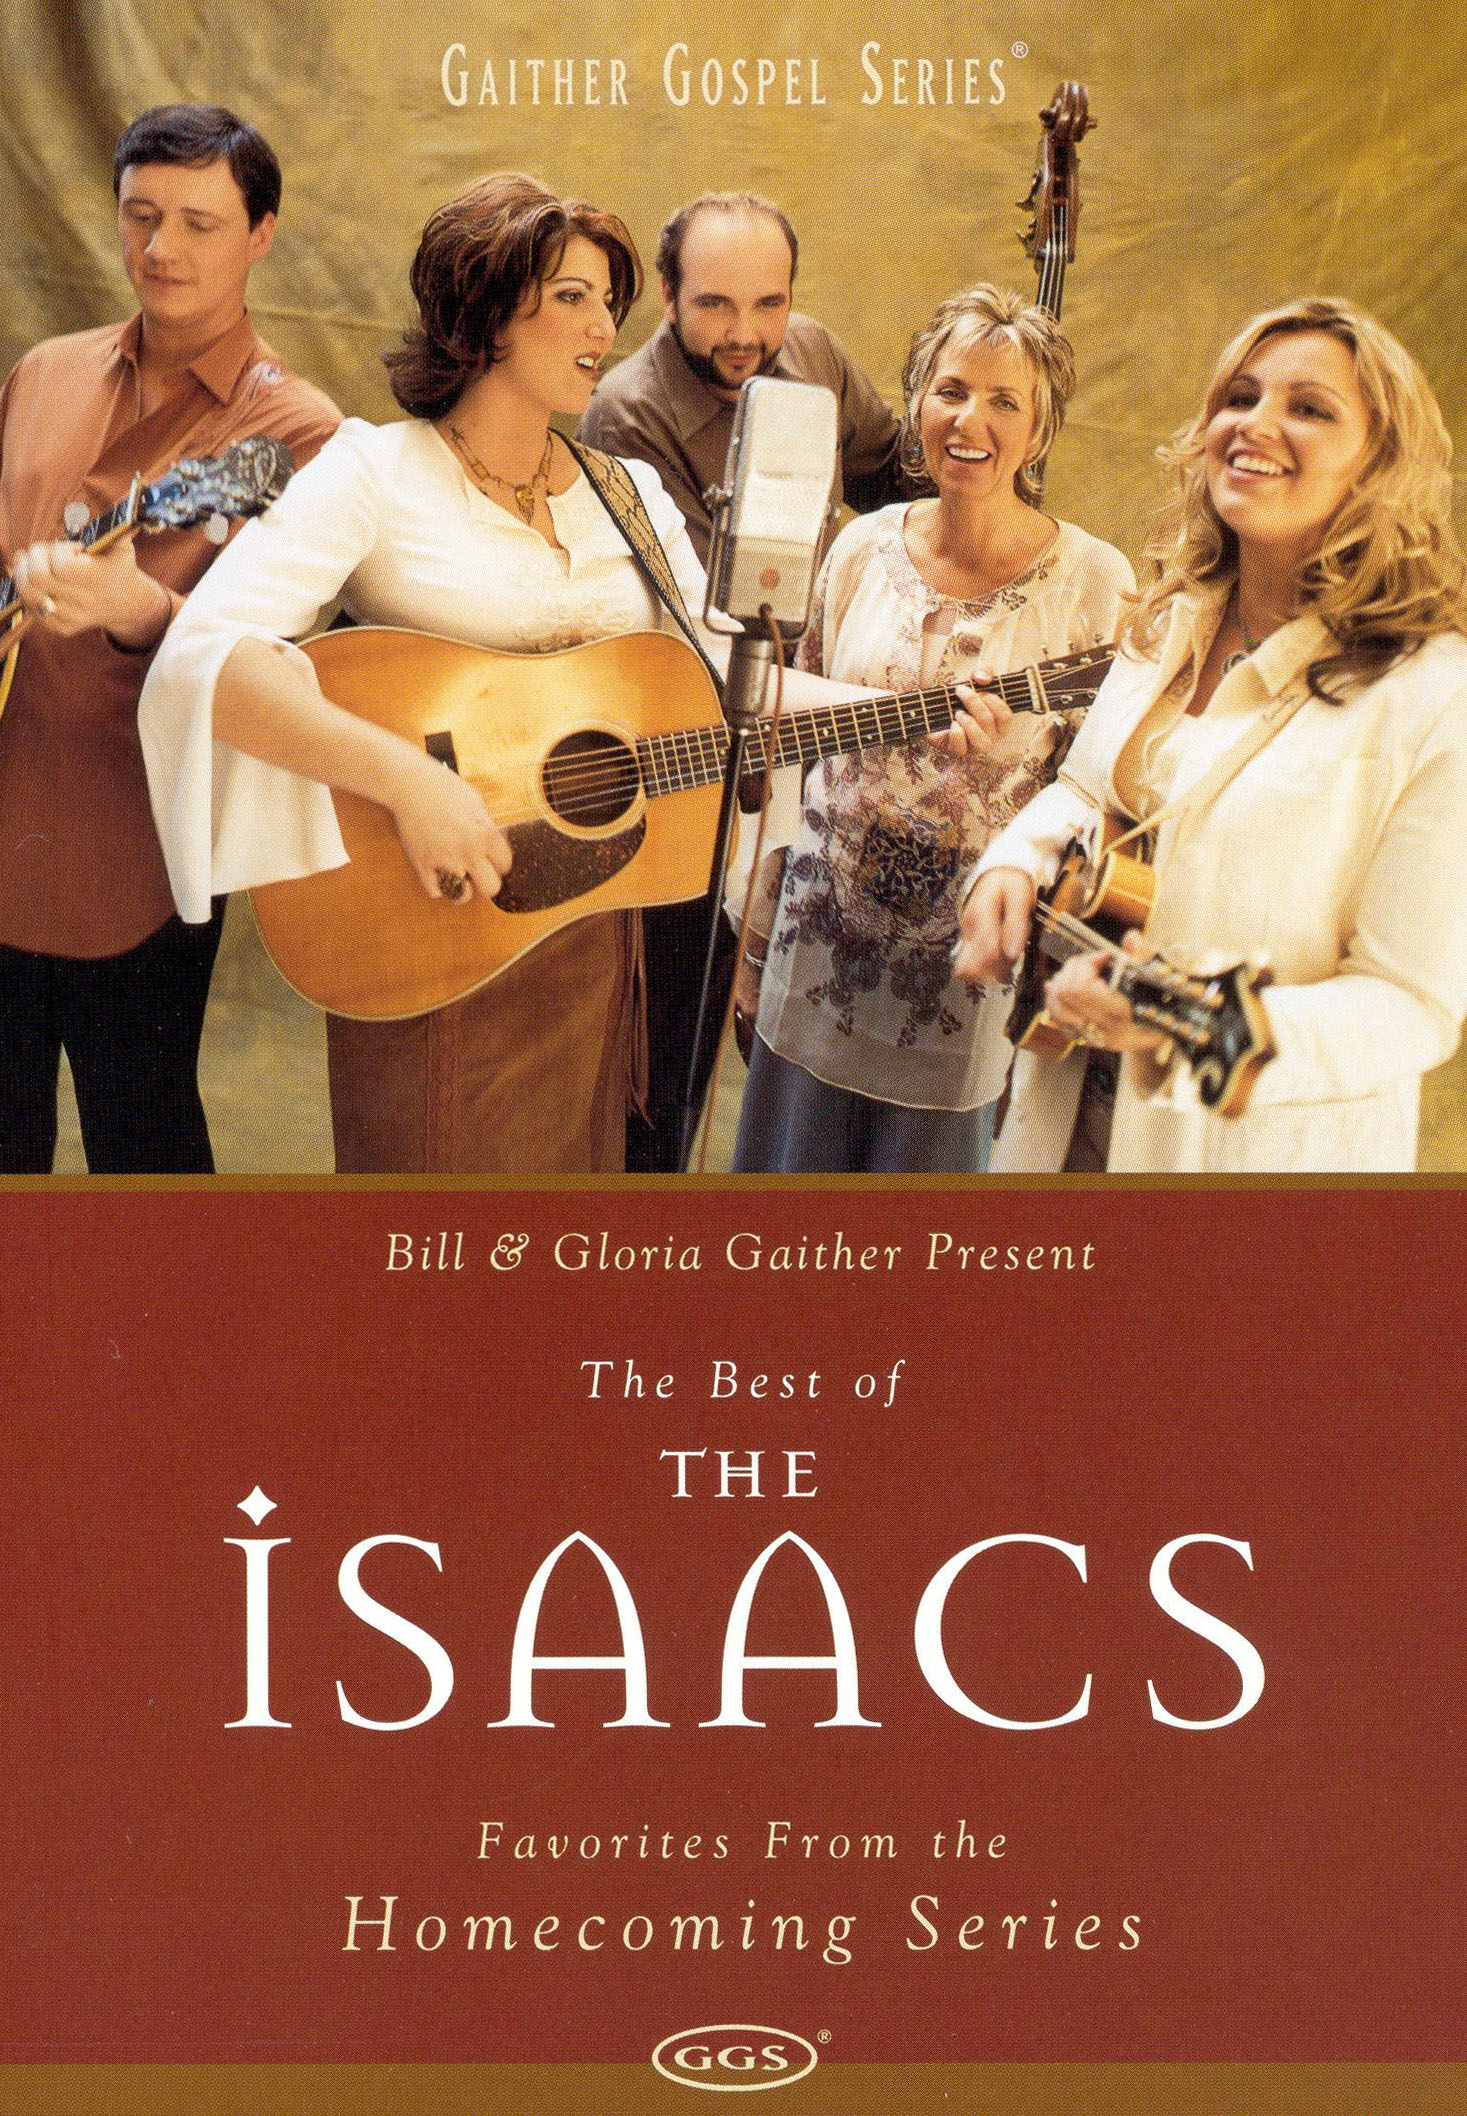 The Best of the Isaacs: Favorites from the Homecoming Series